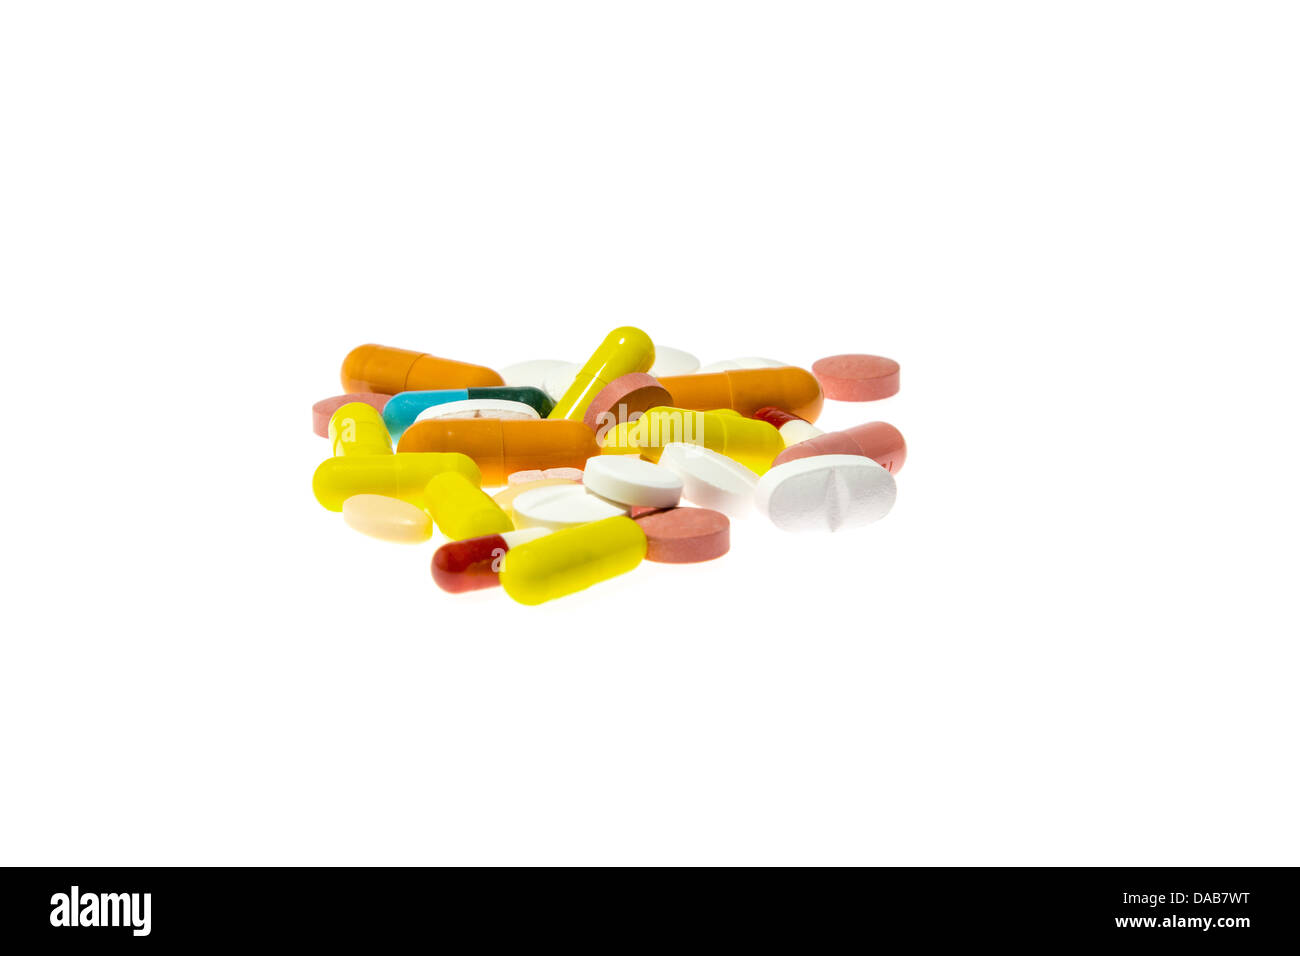 Pills of different colors on a table - Stock Image